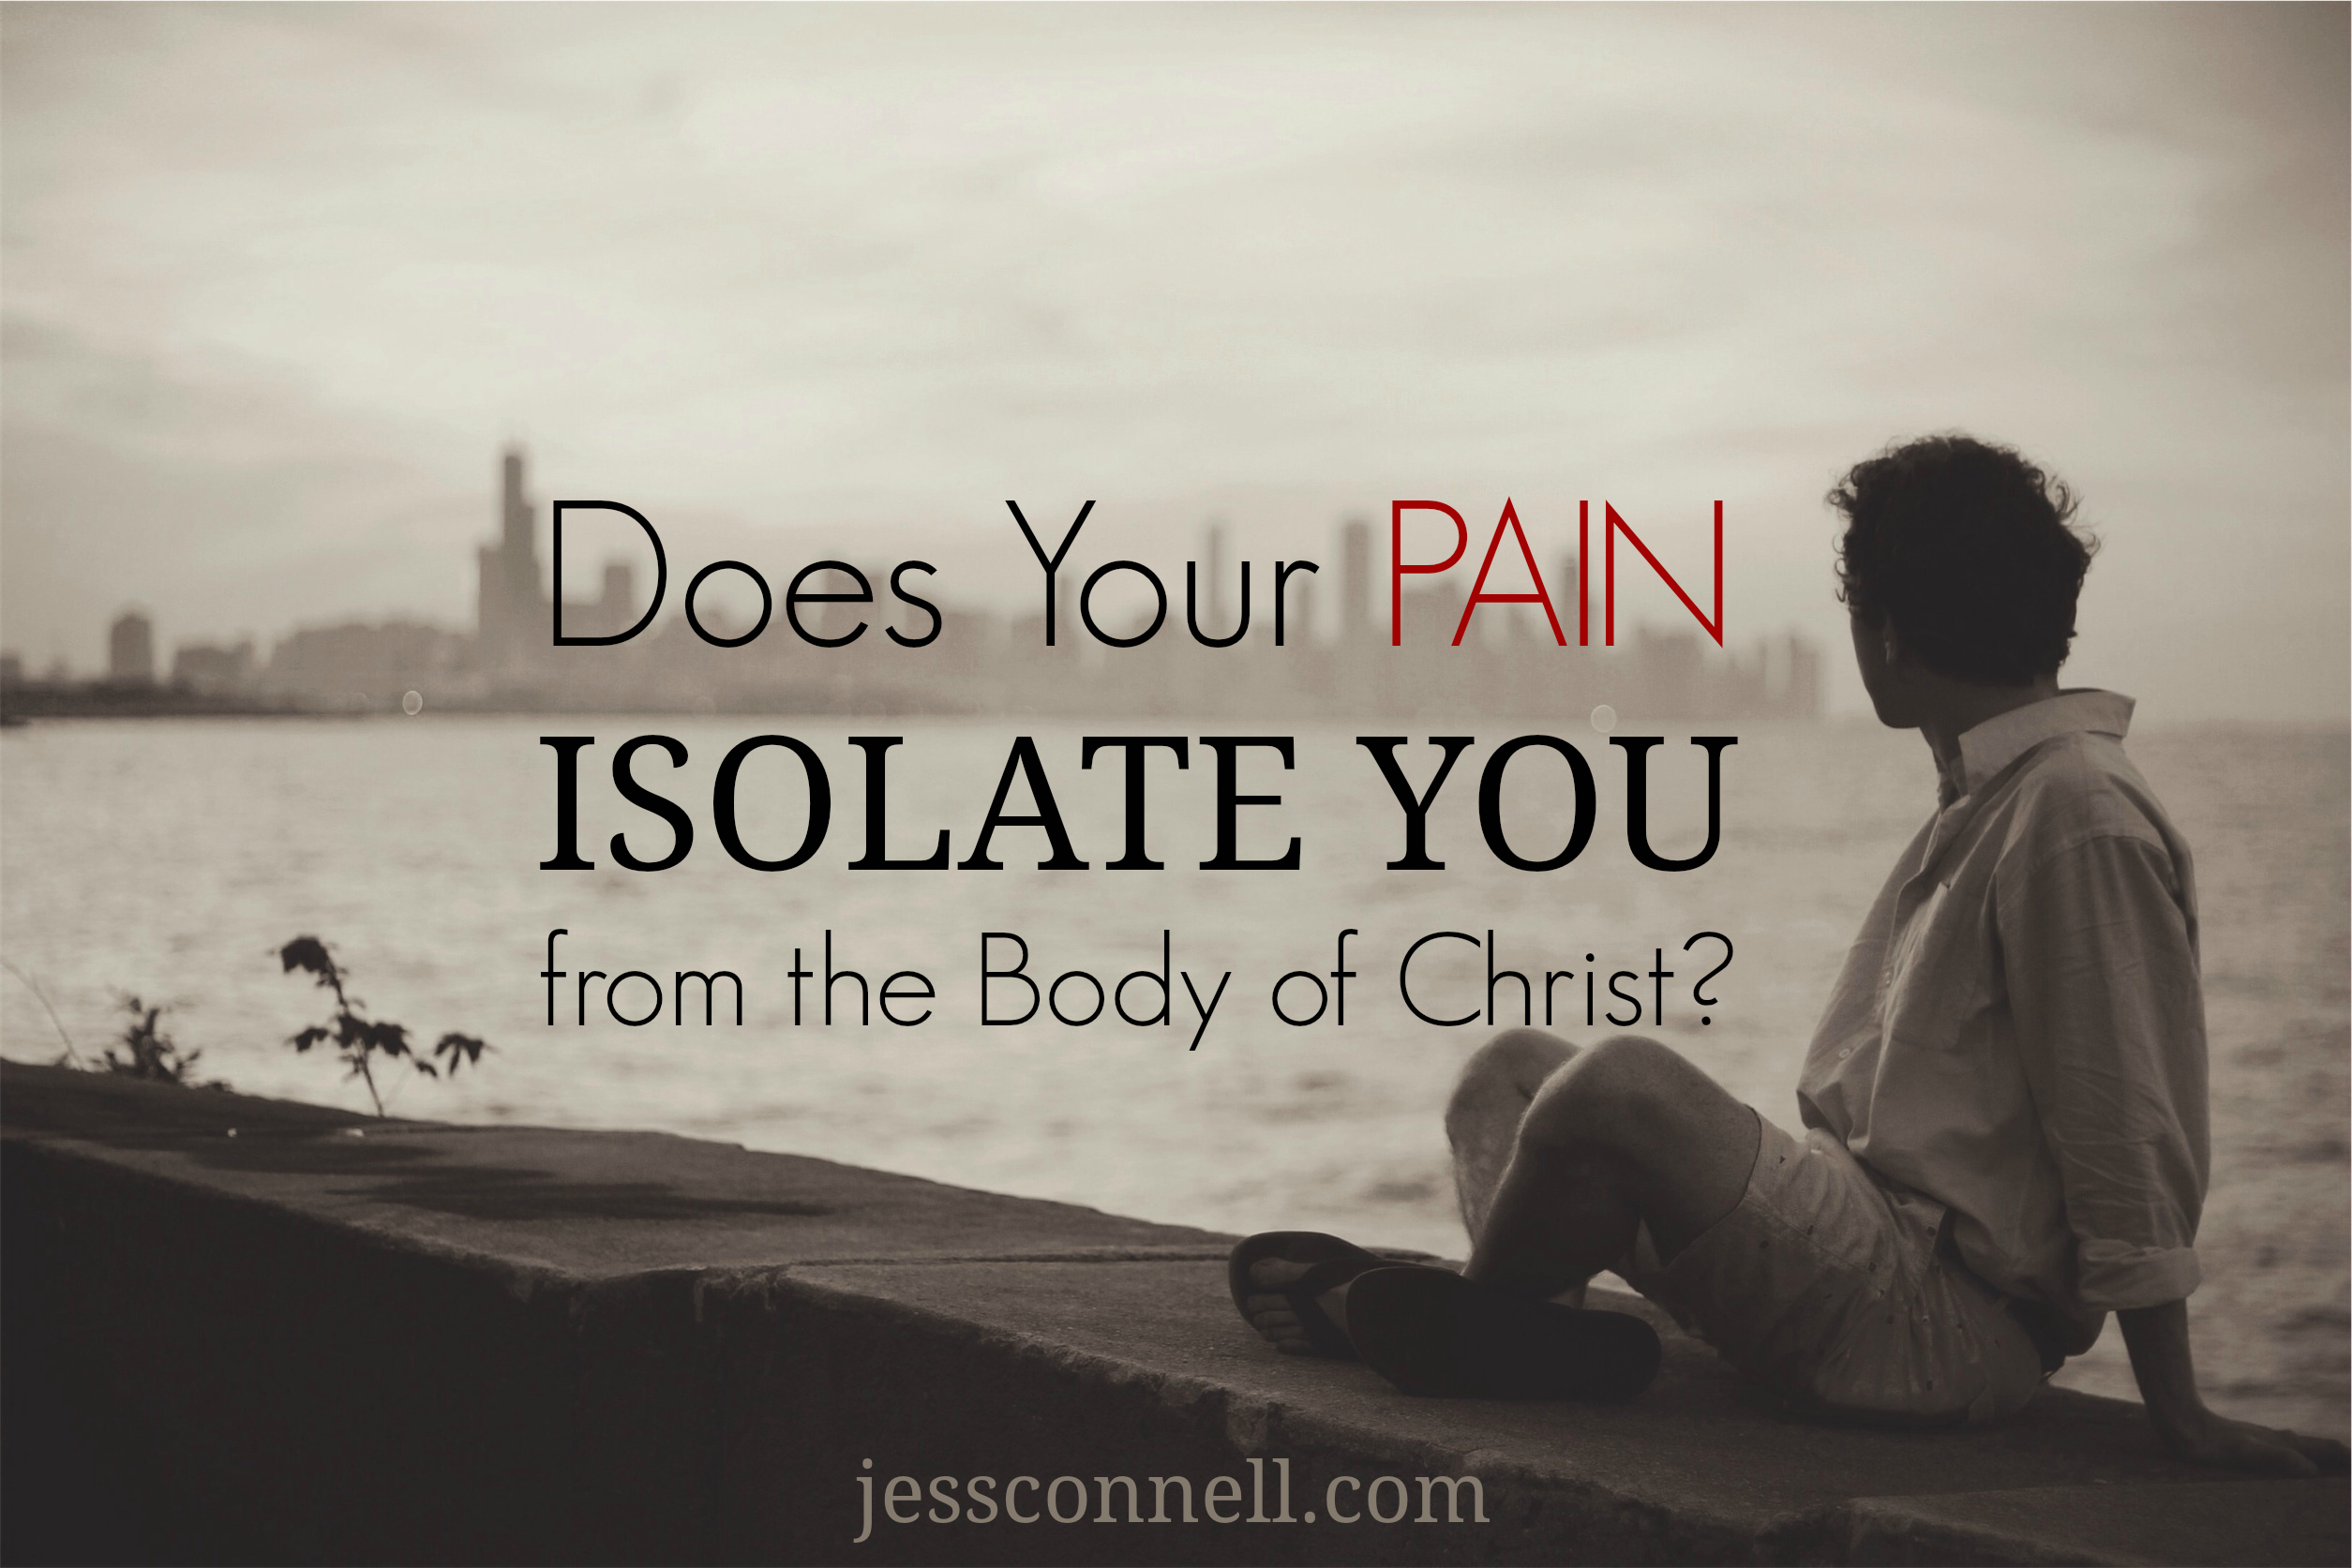 Does Your Pain ISOLATE You From the Body of Christ? // jessconnell.com